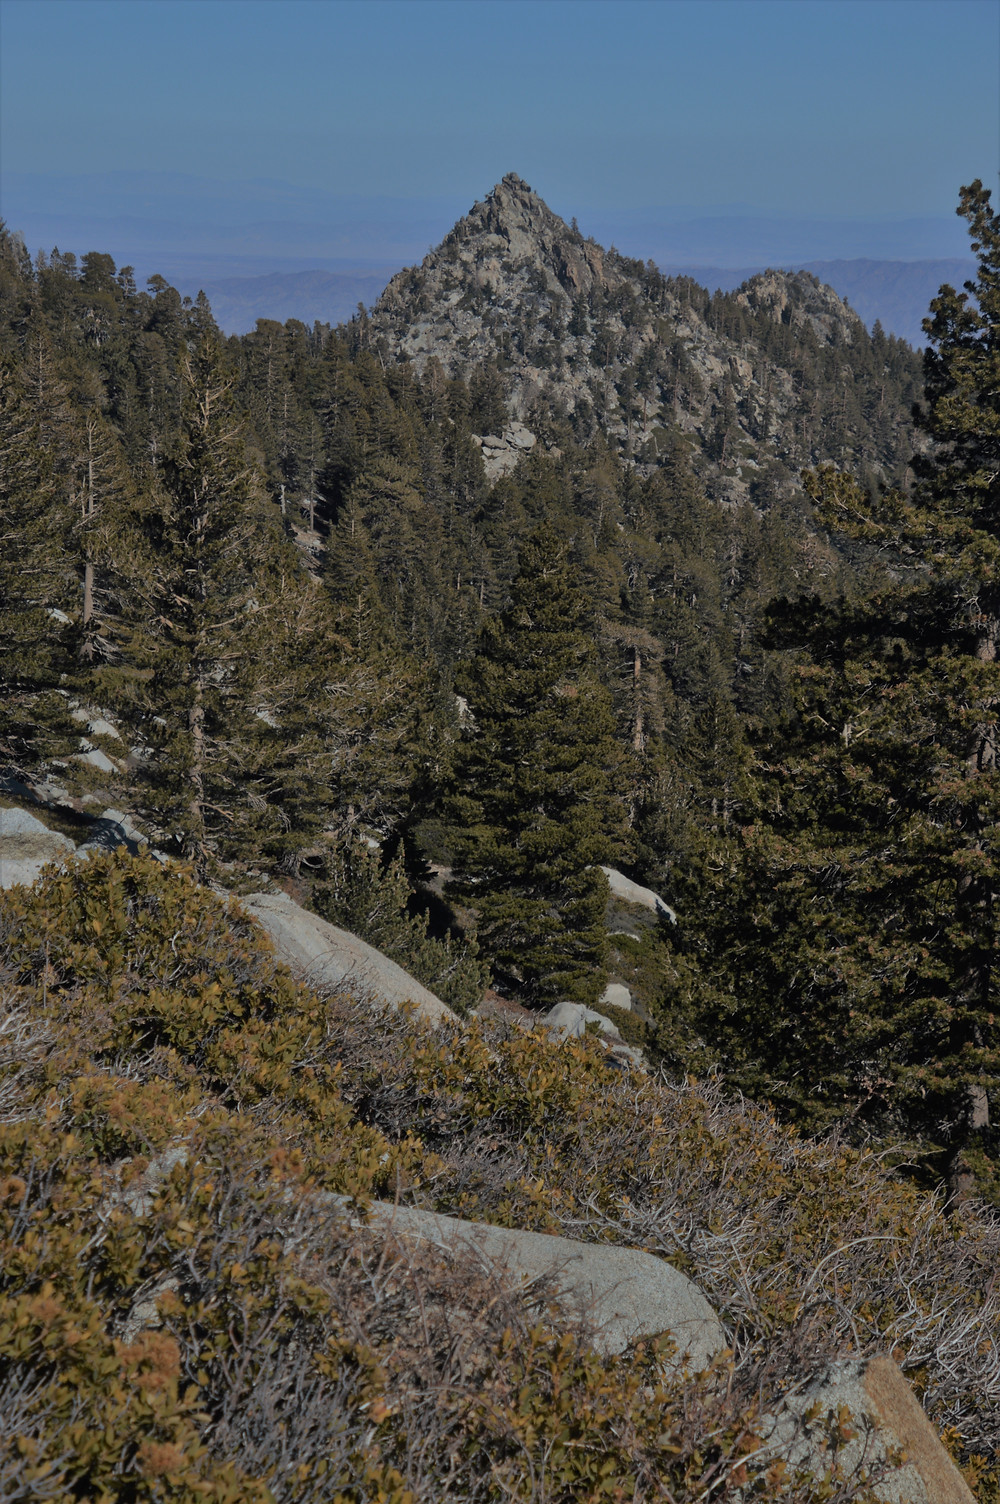 Cornell Peak, one of the more striking features on the San Jacinto summit trail